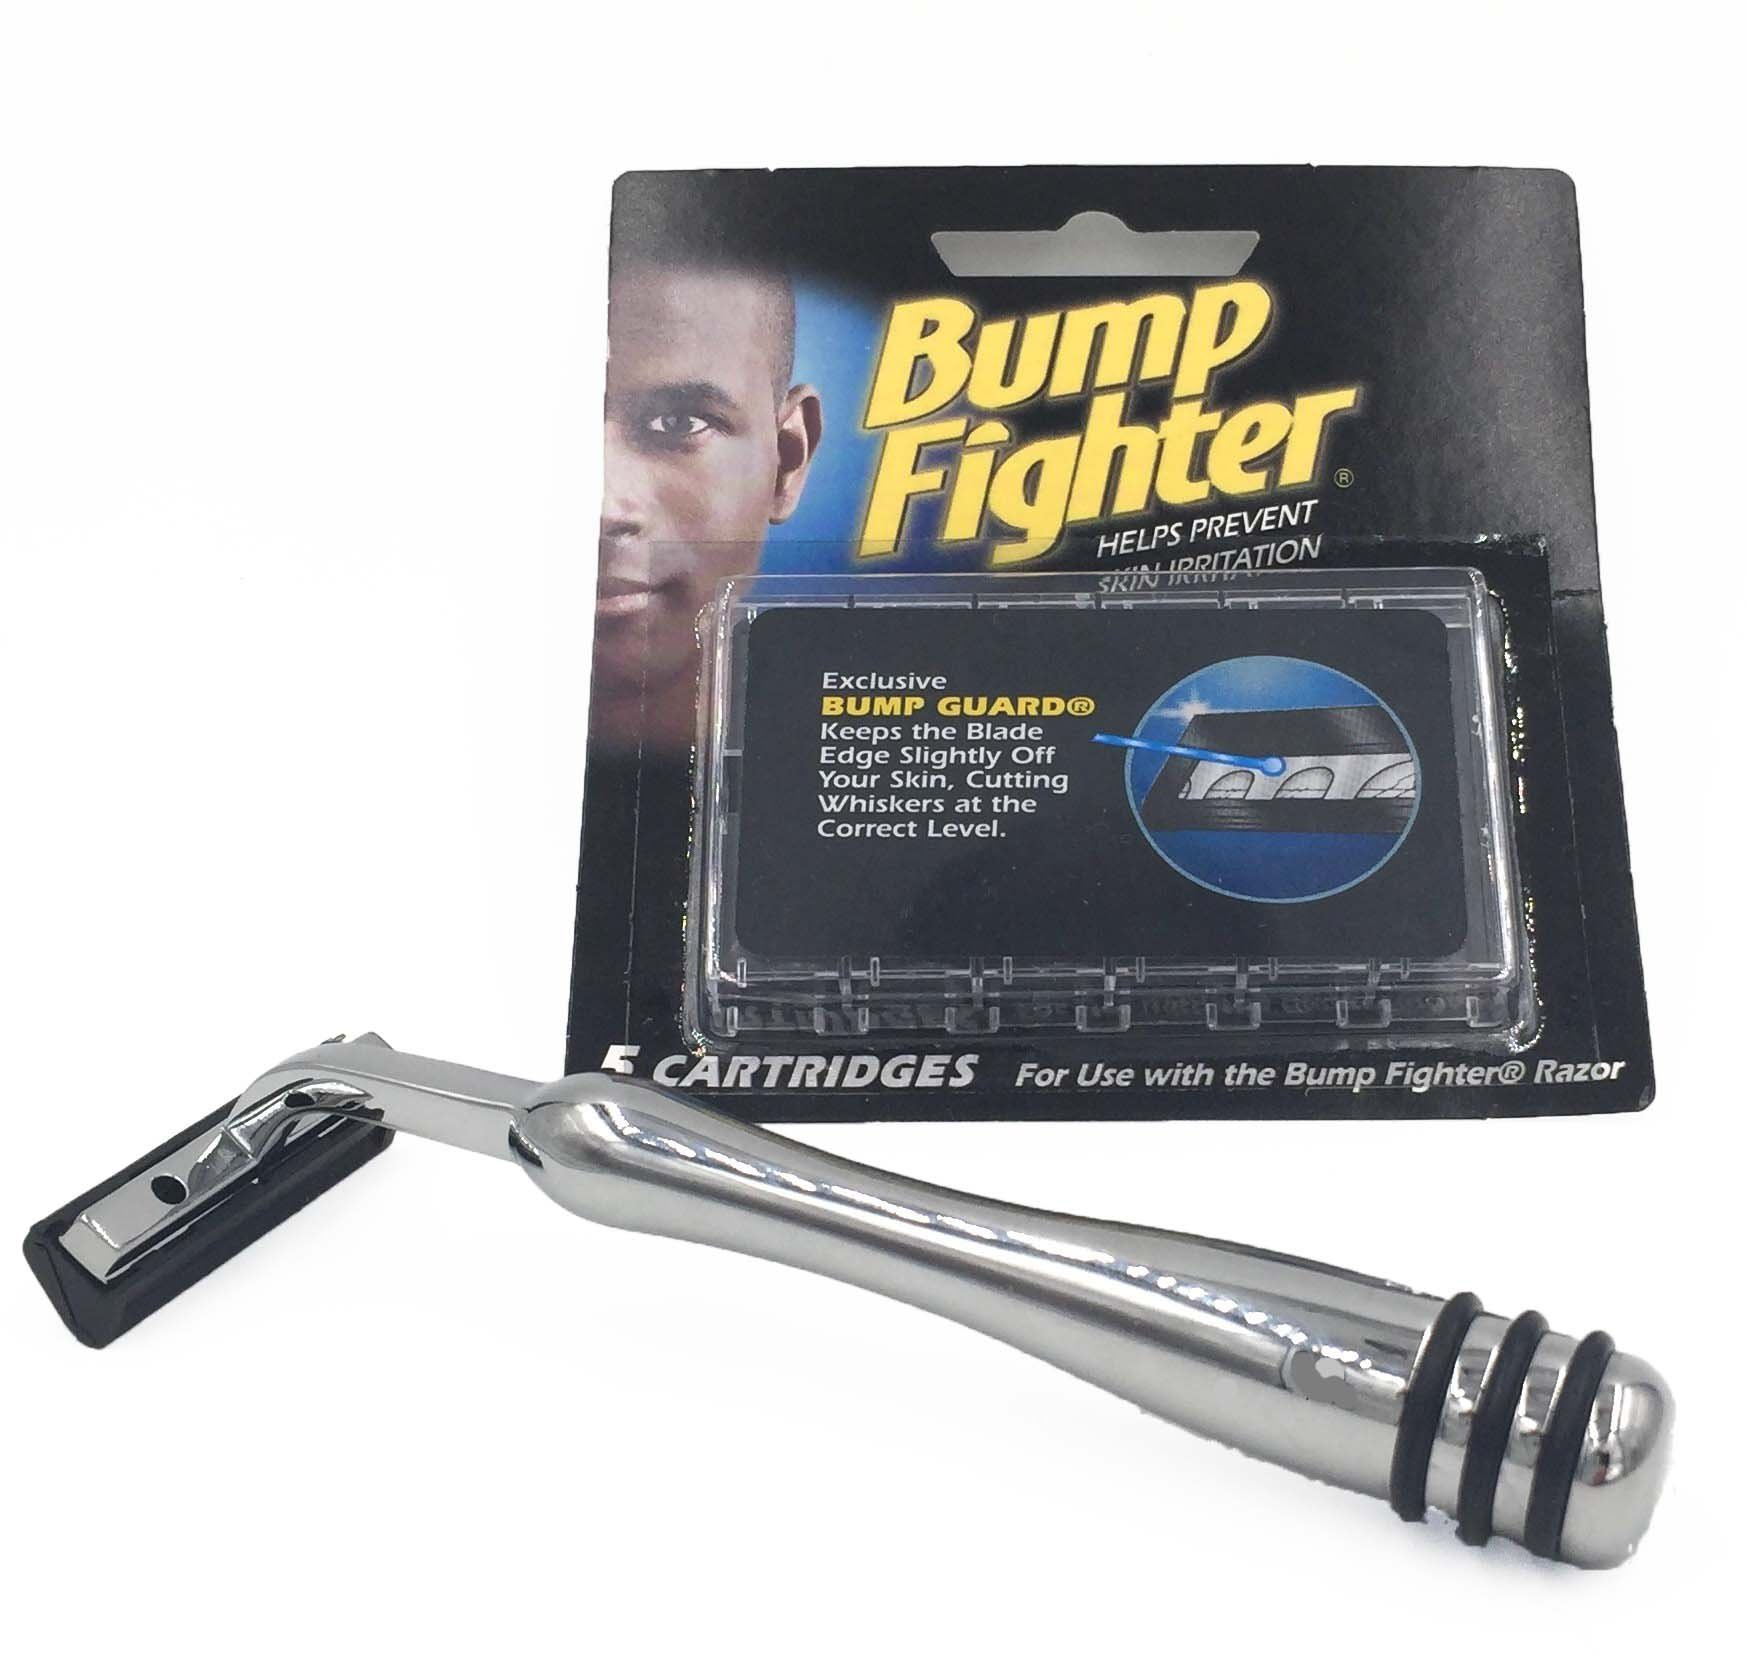 Heavyweight All-metal Bump Fighter Compatible Razor with Rubber Grips and 5 Bump Fighter Blades - A Great Shave System for Men with Sensitive Skin